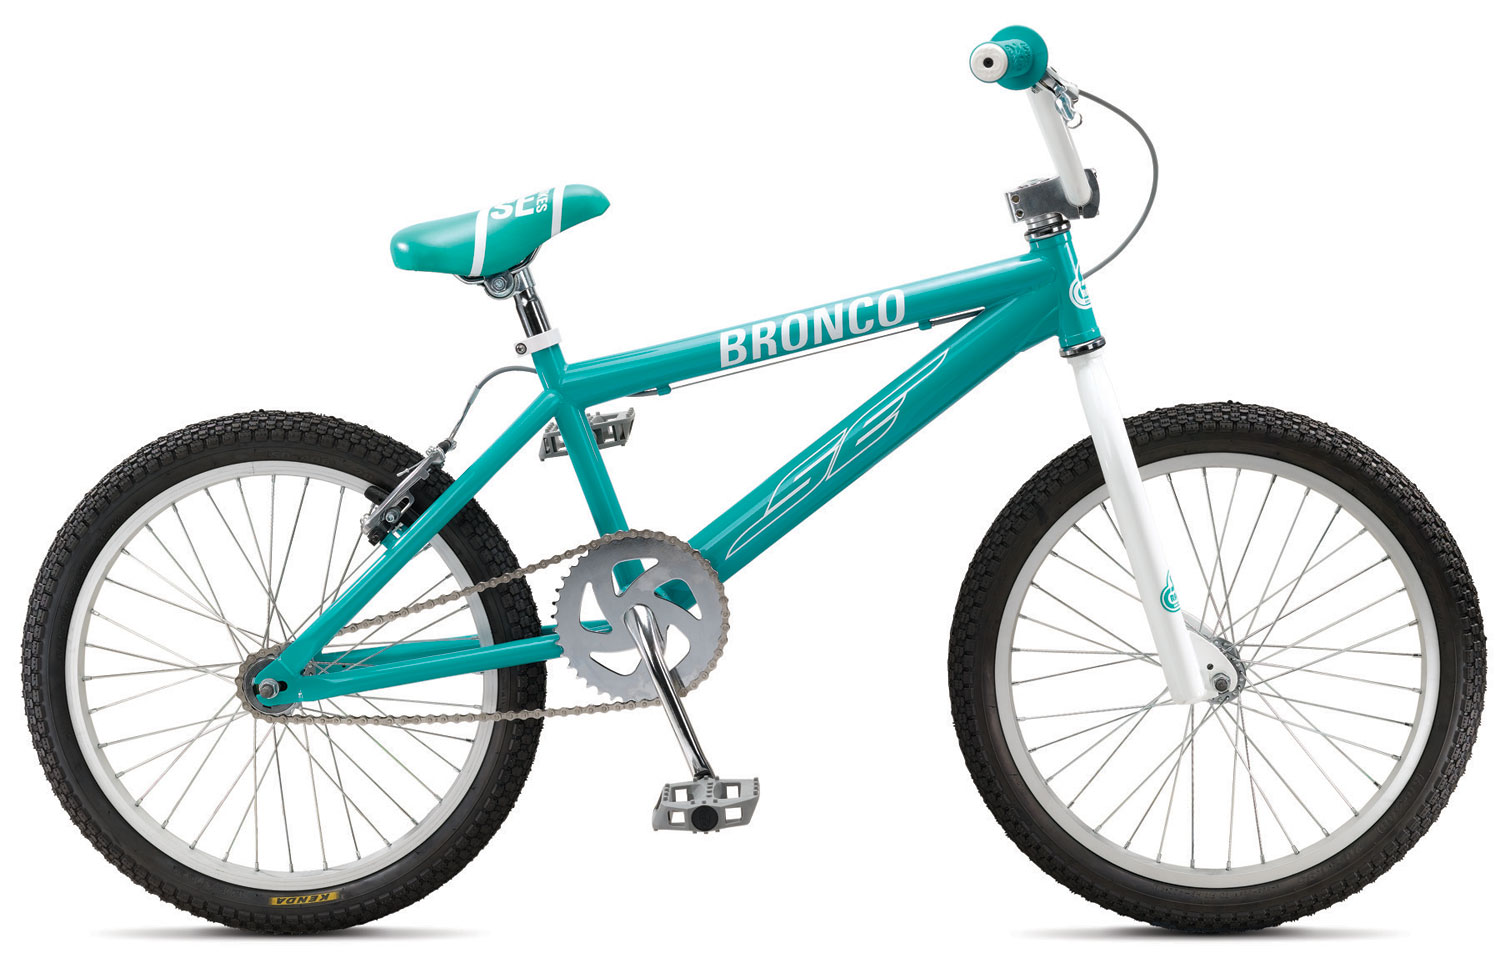 "BMX Key Features of the SE Bronco BMX Bike: FRAME: SE Racing Hi-ten FORK: SE Racing 1-1/8"" Threadless HEADSET: Tange 1-1/8"" Threadless HANDLEBARS: SE Wing Bar, 23"" x 6"" STEM: SE Racing Front Load 1-1/8 Alloy GRIPS: SE Racing Wing Grip BRAKE LEVER: Pro Max 2 Finger BRAKE(S): C-Star V-Brake SEAT: SE Racing w/ Custom Imprinted Cover SEAT POST: SE Racing Straight Post 25.4 CRANKSET: 1-pc Steel, American BB, 170mm, 40T CHAIN: KMC Z410 PEDAL: FPD Composite Resin RIM: Alex C1000, 36H Aluminum w/ 14 Ga. Spokes FRONT HUB: SE Racing 36H REAR HUB: SE Racing 36H w/ 16T Freewheel TIRES: 2.125 F, 1.75 R EXTRAS: SE Plastic Grip End Caps - $149.95"